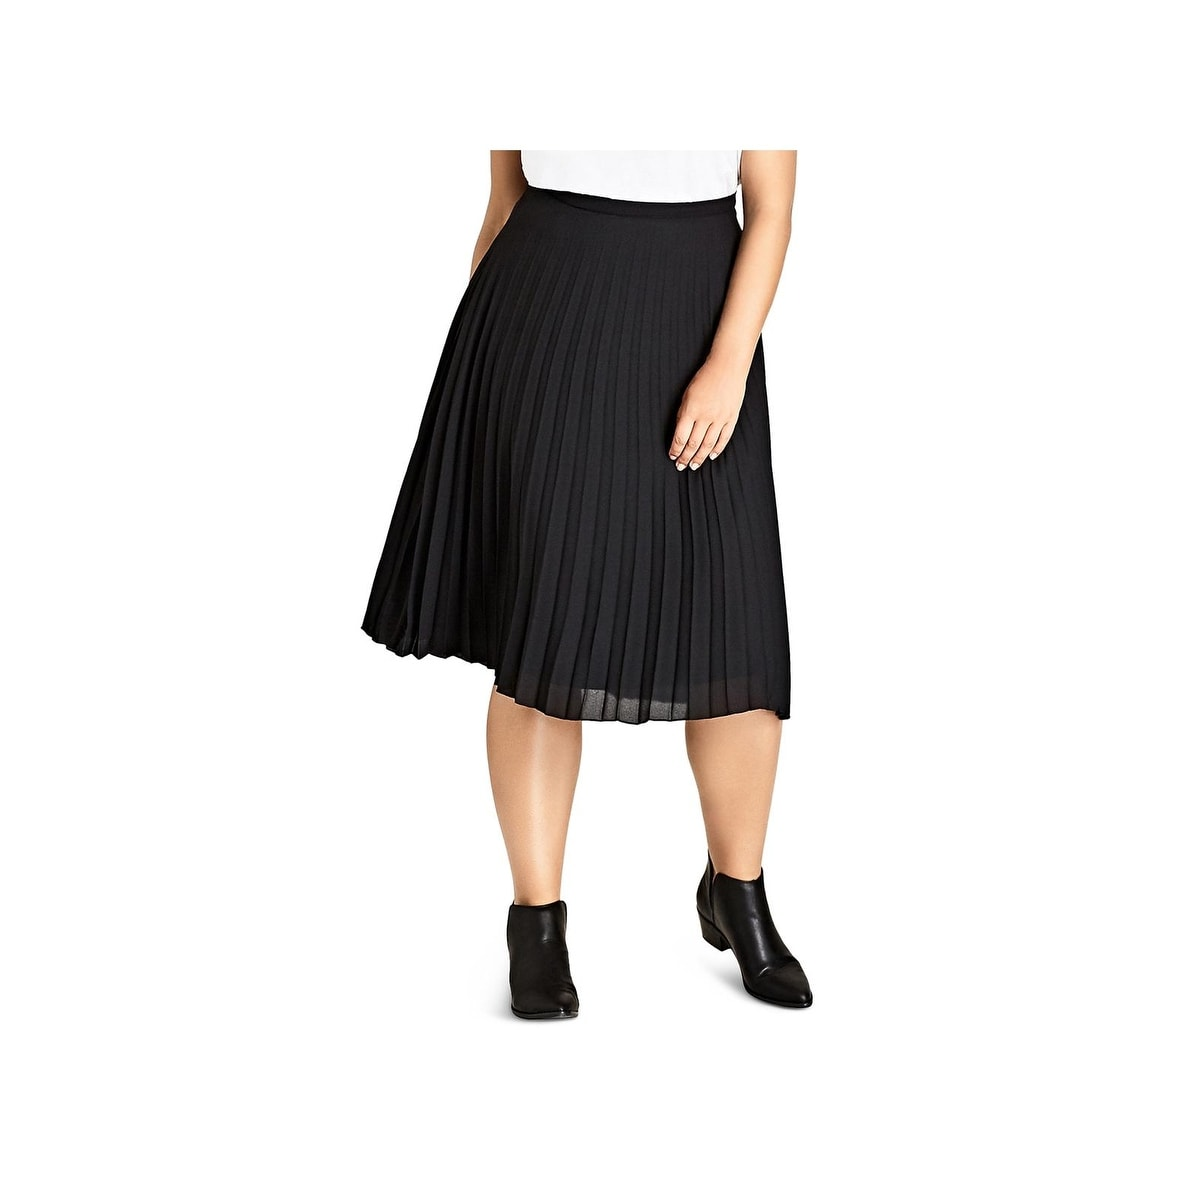 f9b7817c5 Shop City Chic Womens Midi Skirt Pleated A-Line - Free Shipping On Orders  Over $45 - Overstock - 26437500